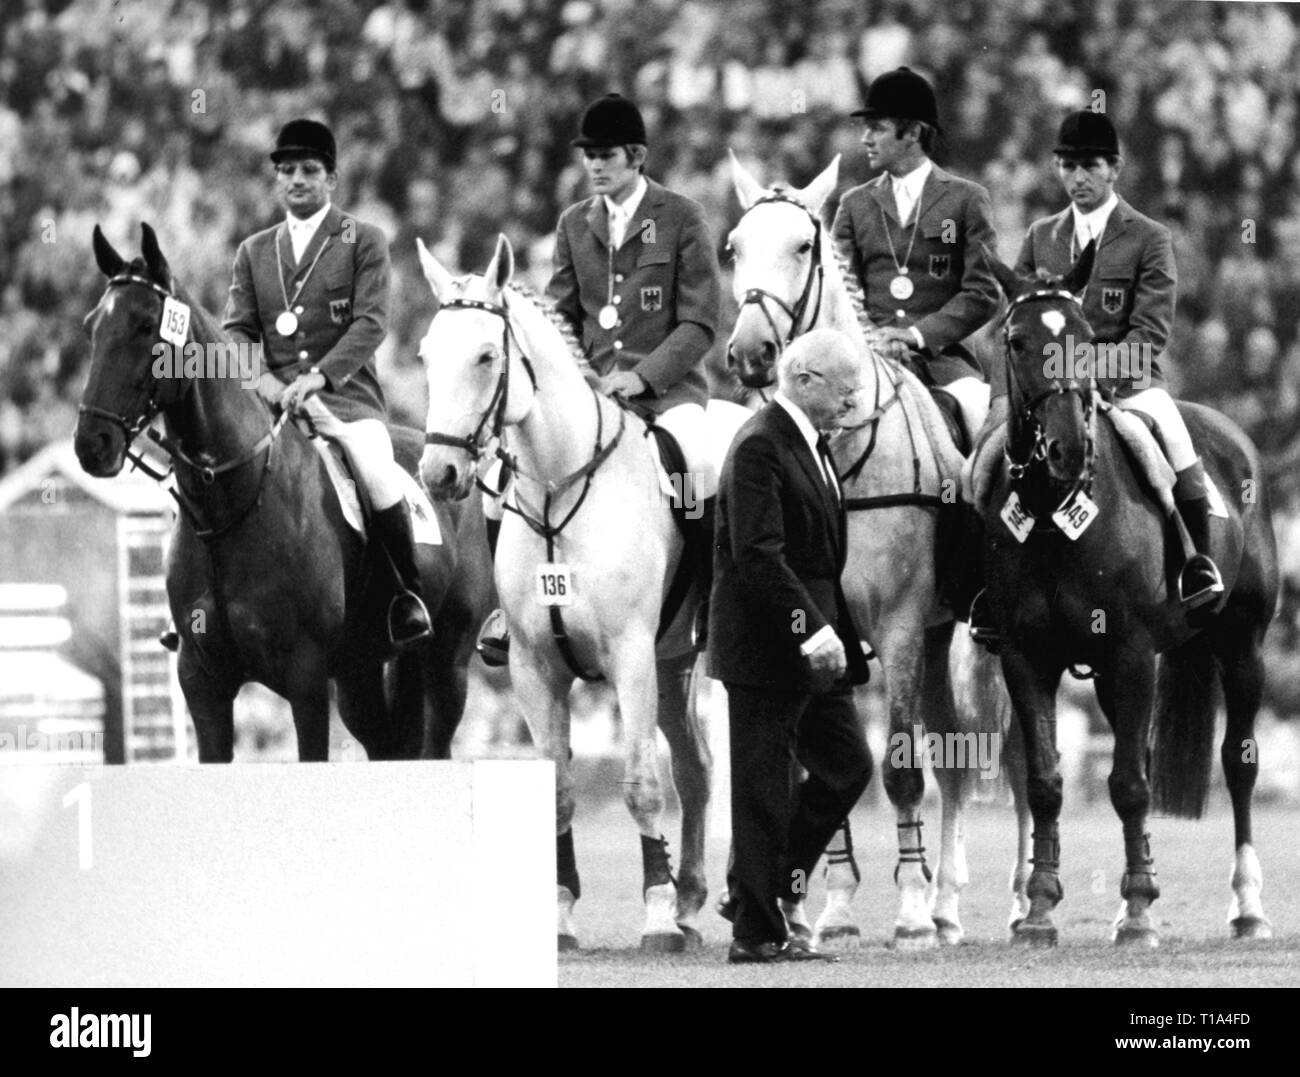 sports, Olympic Games, 1972 Munich, presentation ceremony for the jump jockey team competition, gold medalist Germany, fltr: Hans Guenter Winkler on 'Trophy', Gerd Wiltfang on 'Askan', Fritz Ligges on 'Robin', Hartwig Steenken on 'Simona', in foreground Avery Brundage, riding arena Riem, Munich, 11.9.1972, Additional-Rights-Clearance-Info-Not-Available - Stock Image